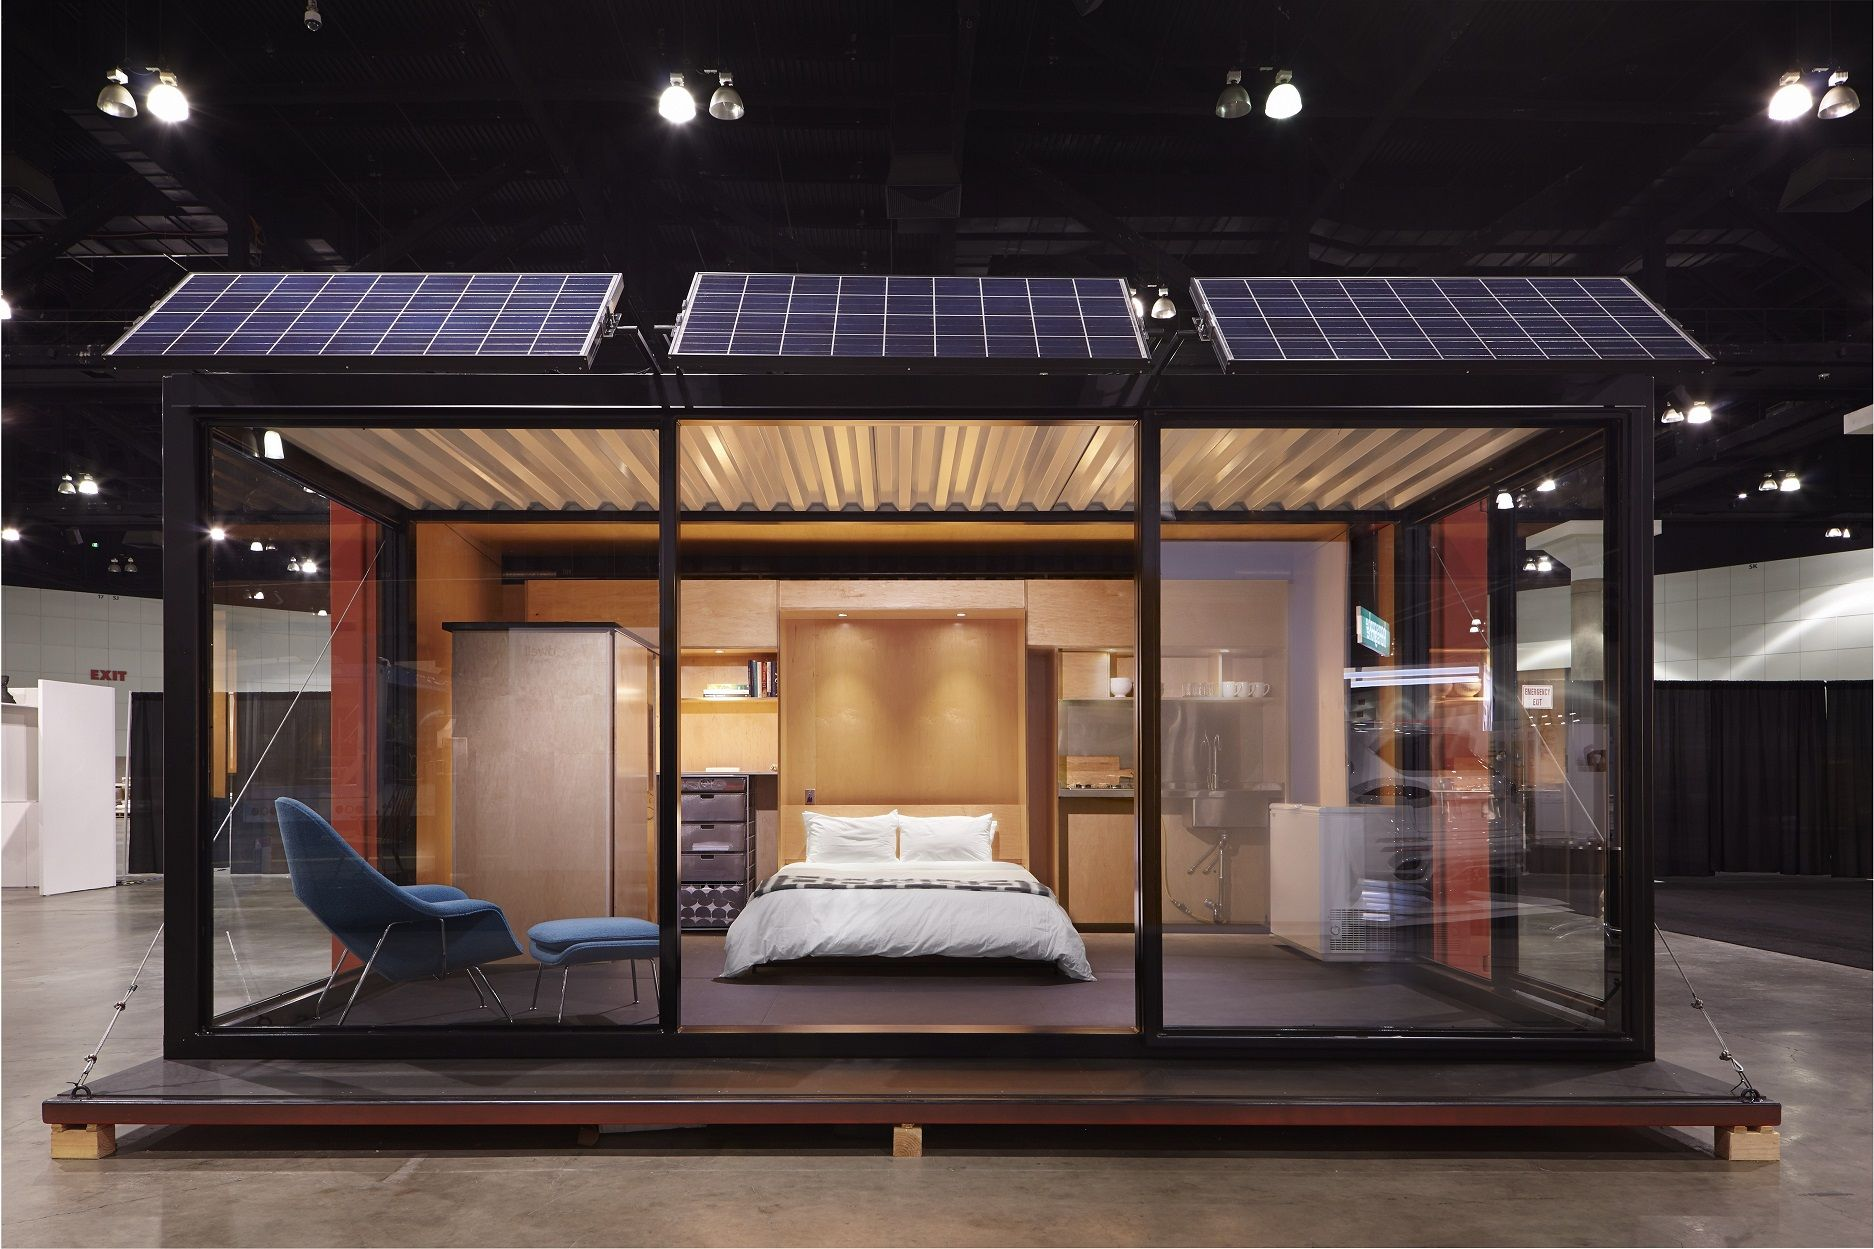 Top 16 Shipping Container Homes in the US How Much They